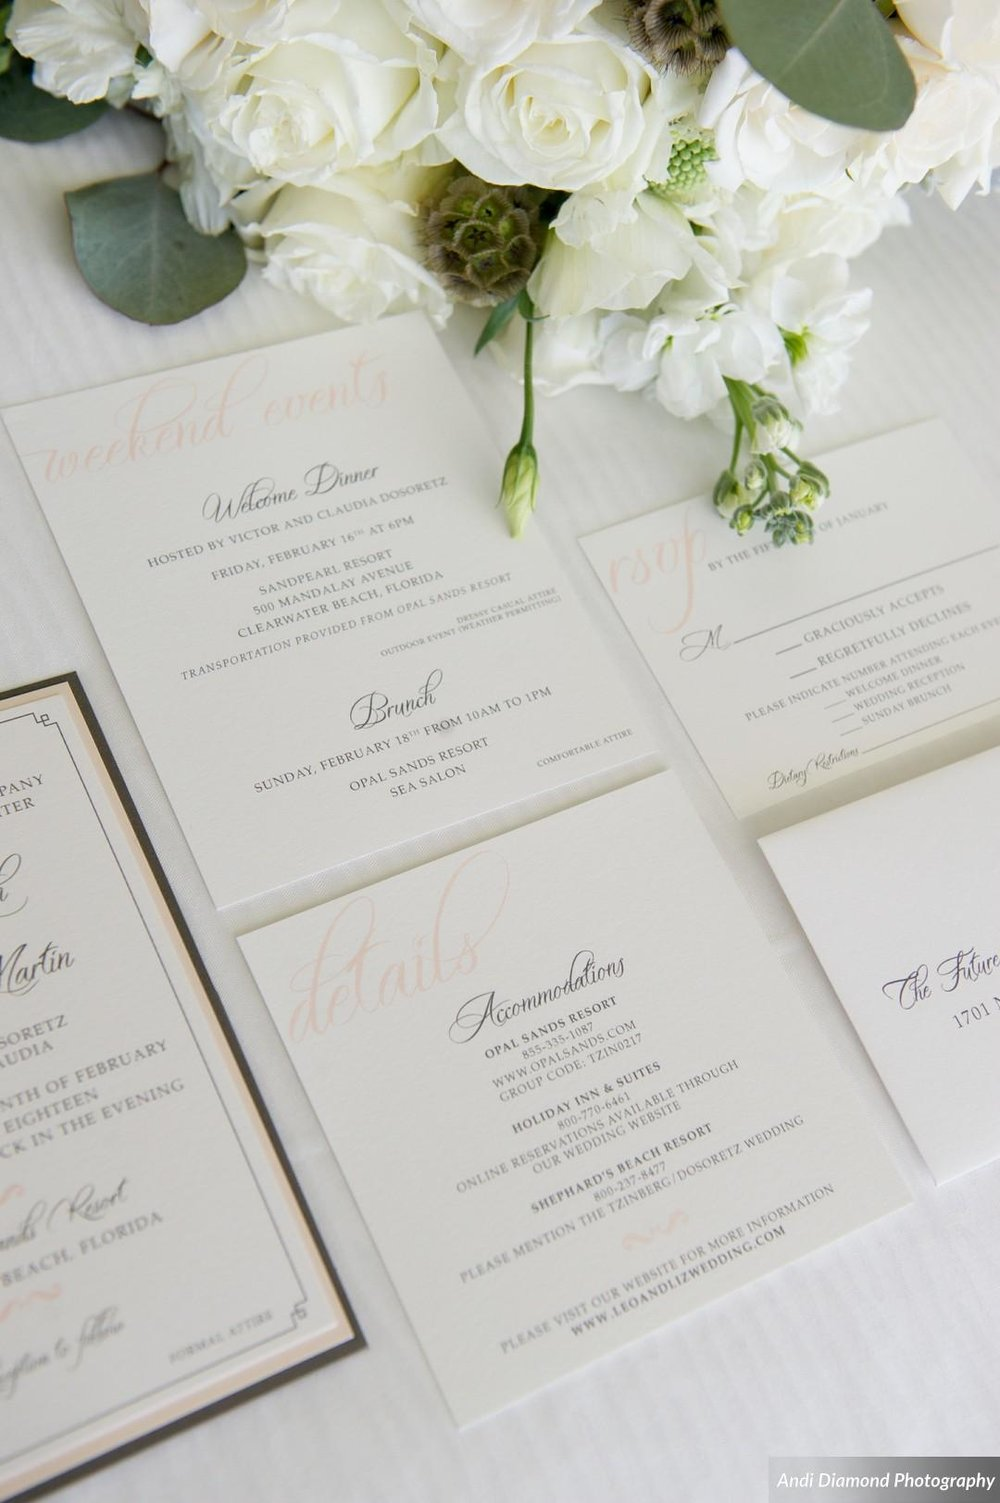 From the first impressions of receiving elegant pocket-style custom invitations, guests knew they were in for a special celebration.